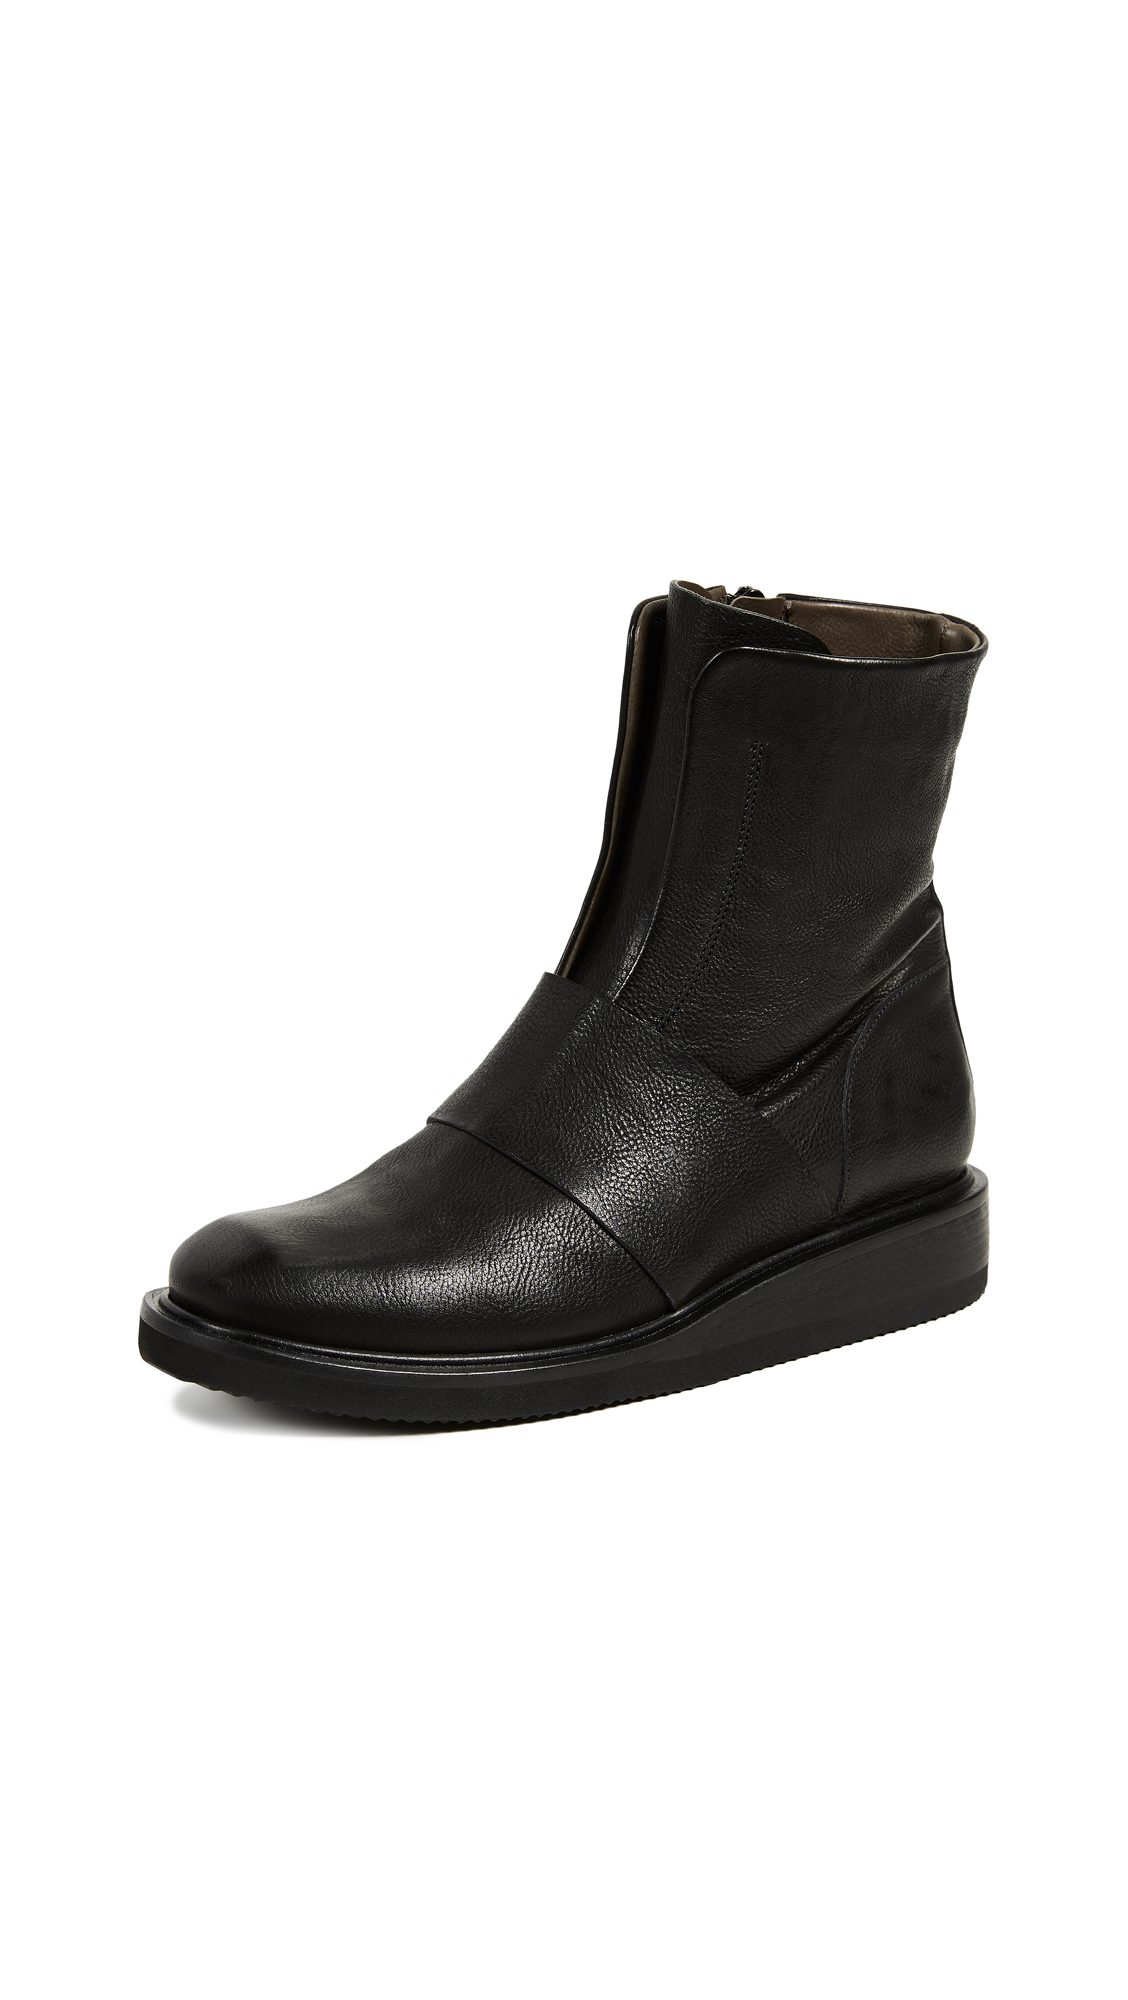 Coclico Shoes Dipsa Boots - Black